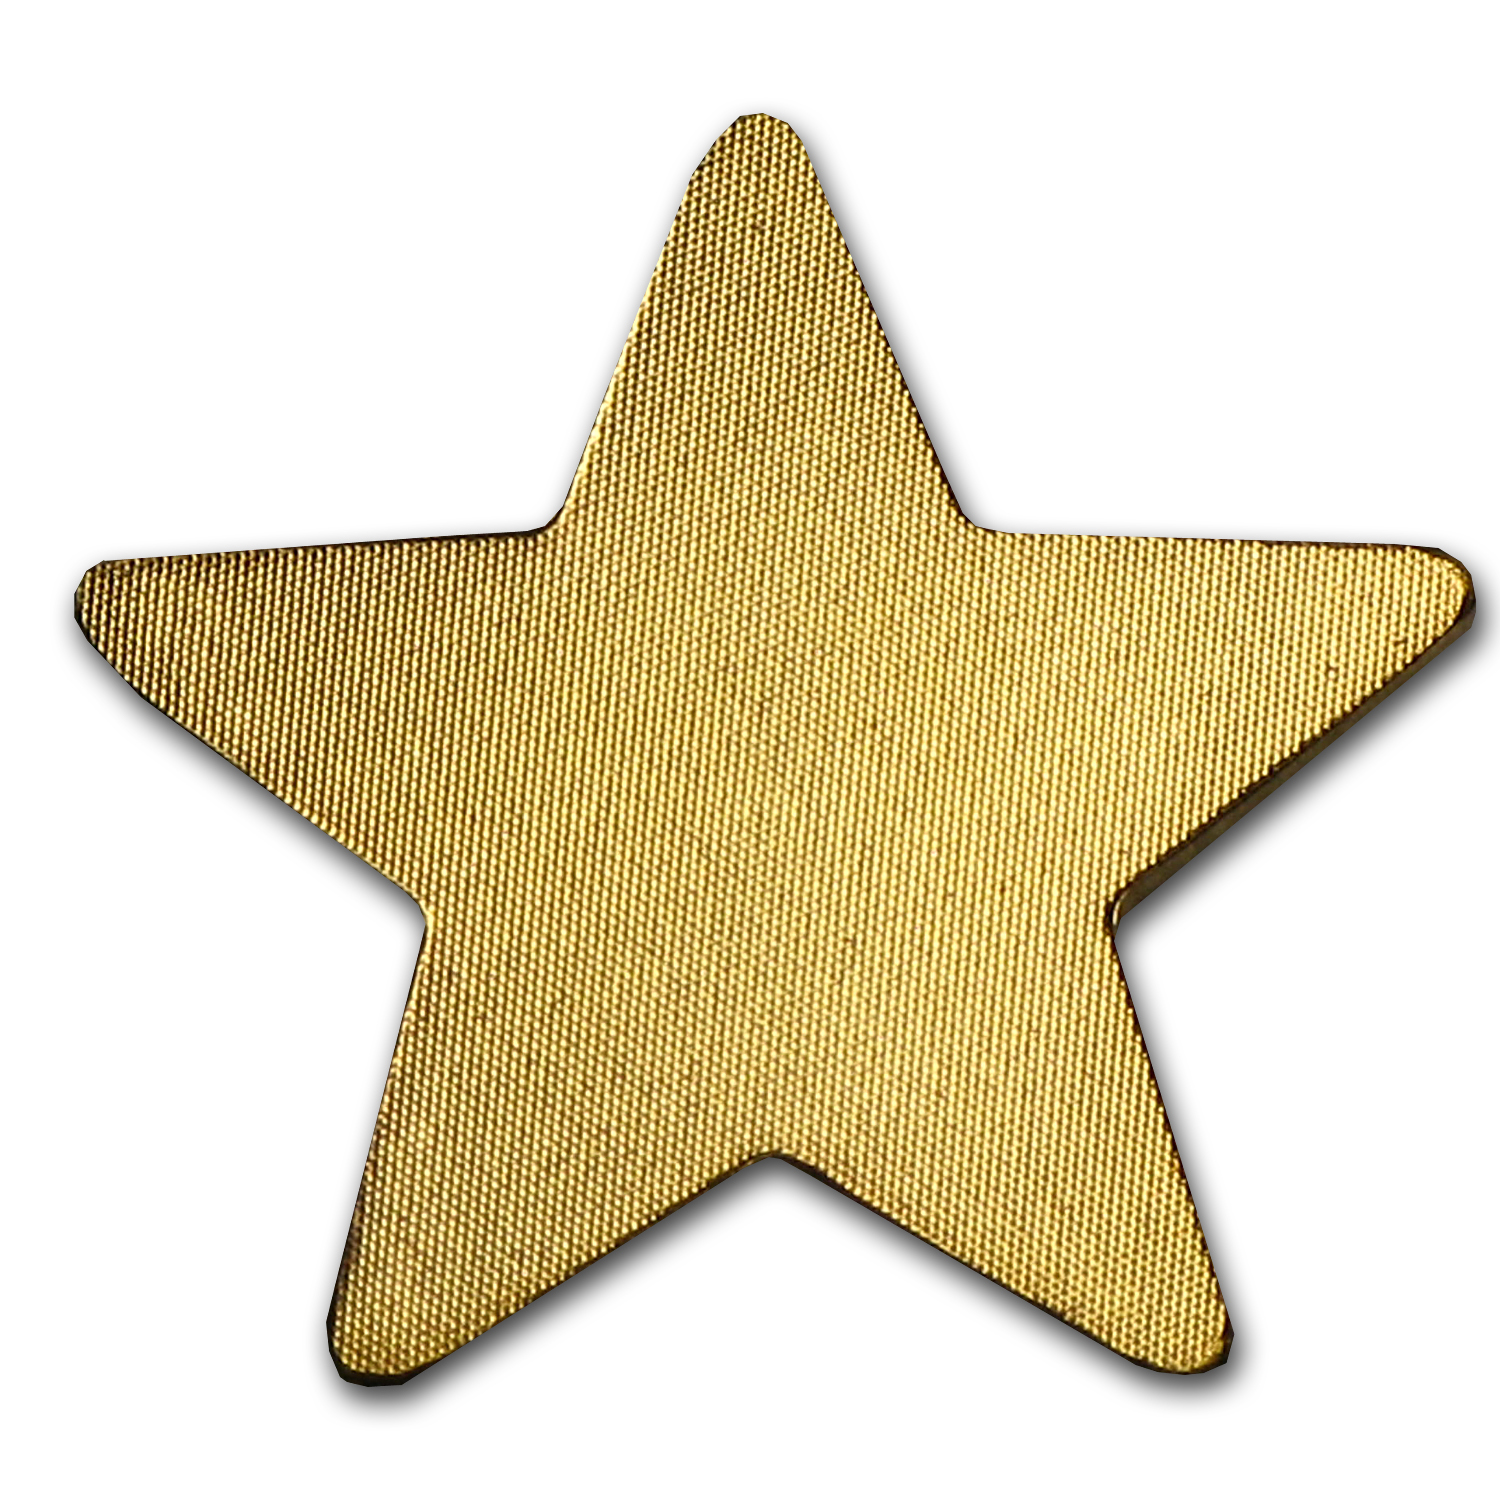 Palau 1/2 gram Gold $1 Lucky Star Coin